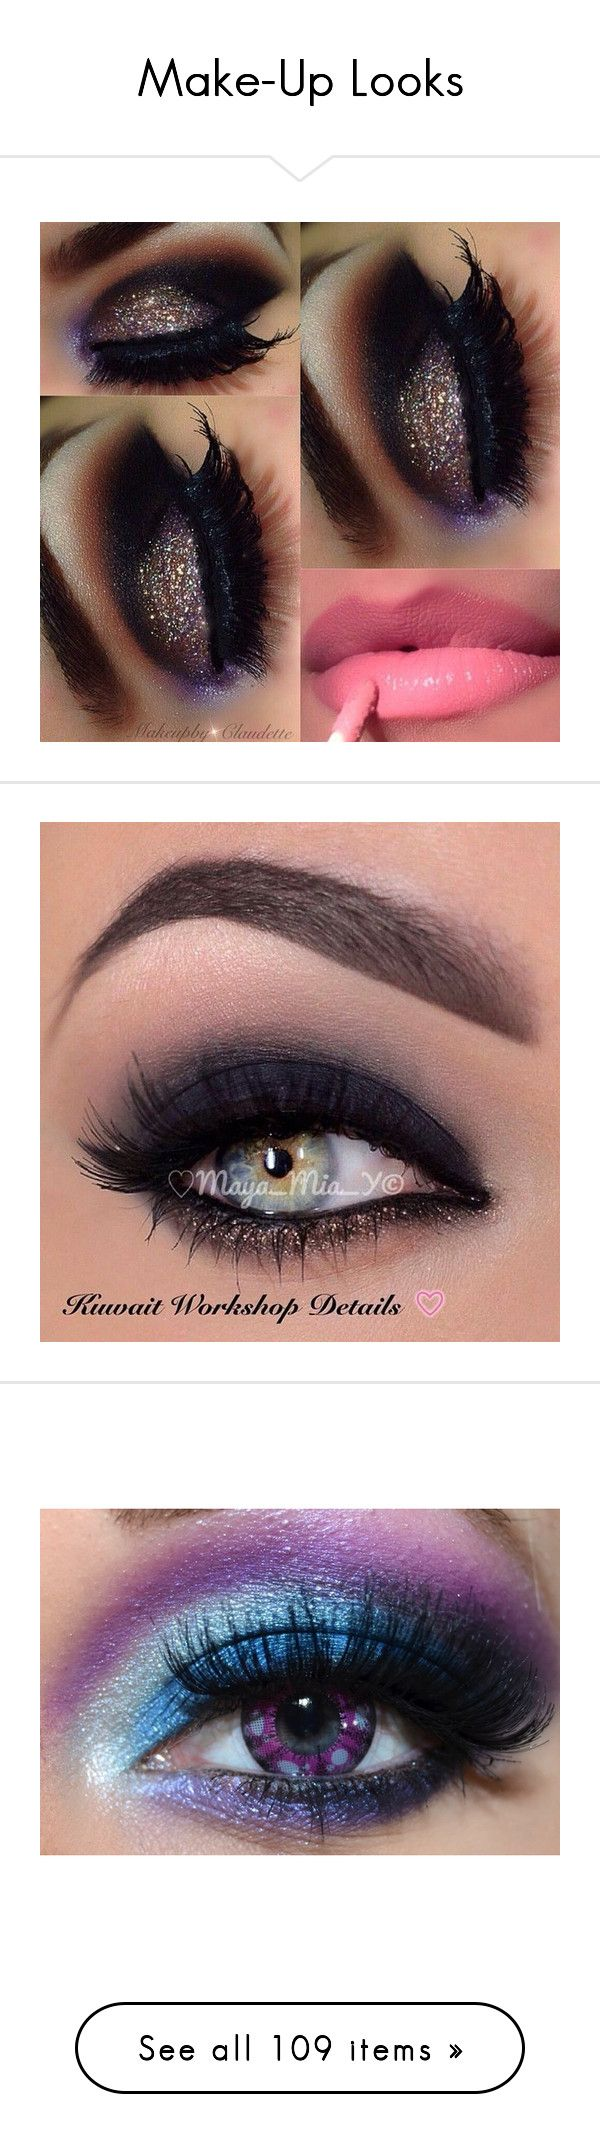 Make-Up Looks by jamzm ❤ liked on Polyvore featuring beauty products, makeup, mac cosmetics, eye makeup, eyes, beauty, halloween, eyeshadow, maquiagem and black eye makeup